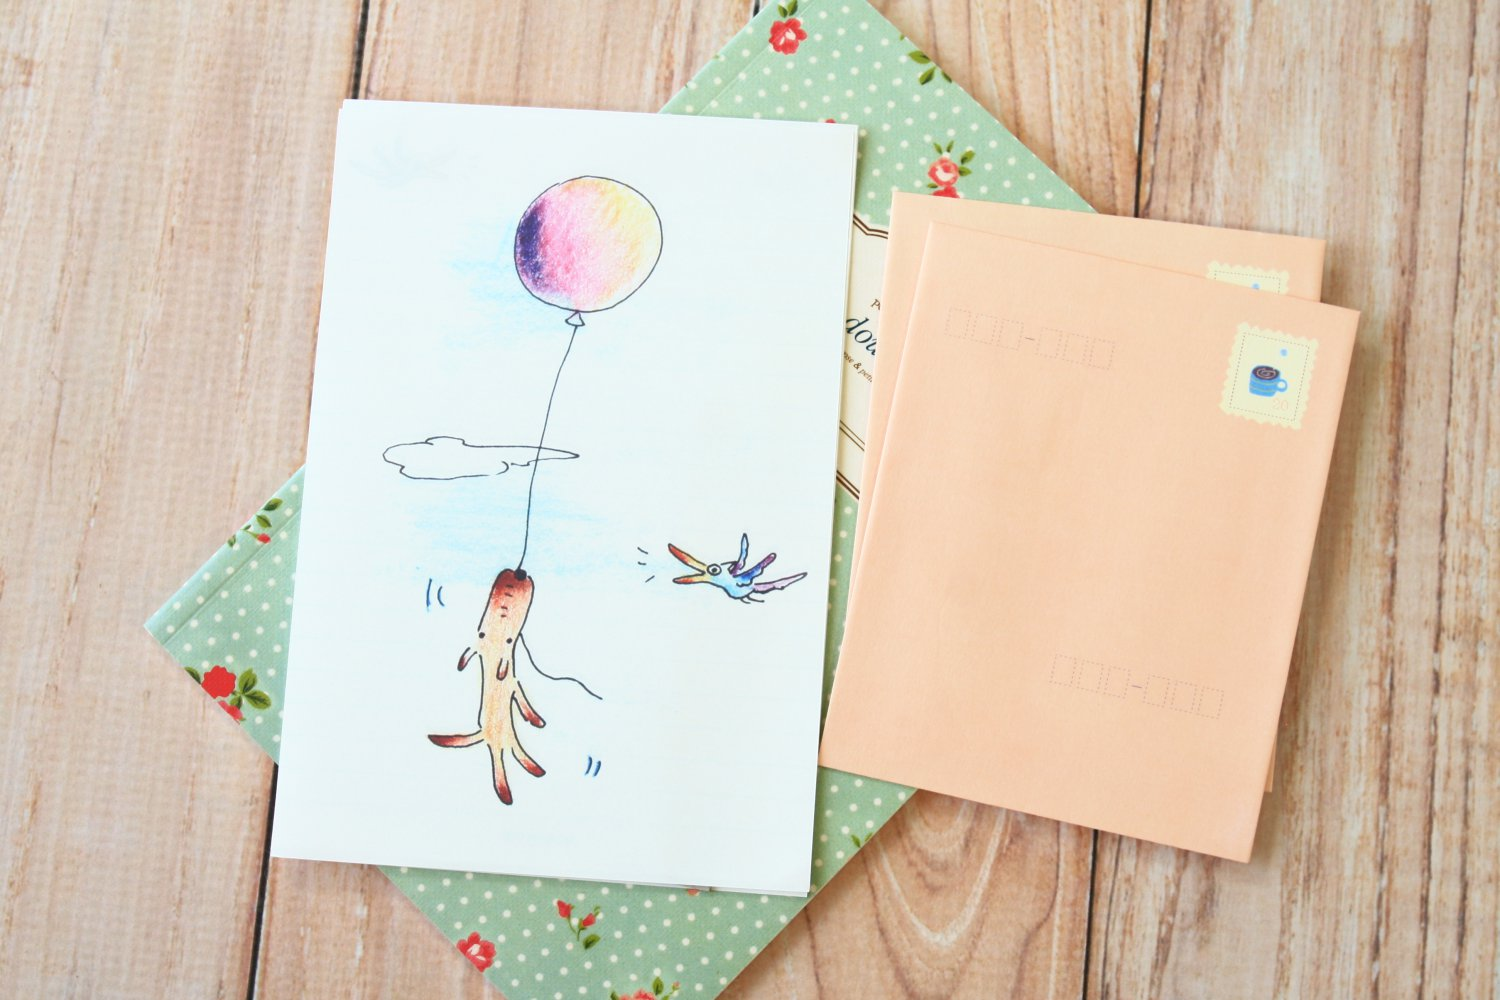 Baloon Puppy Ning Ju writing paper and envelopes letter set